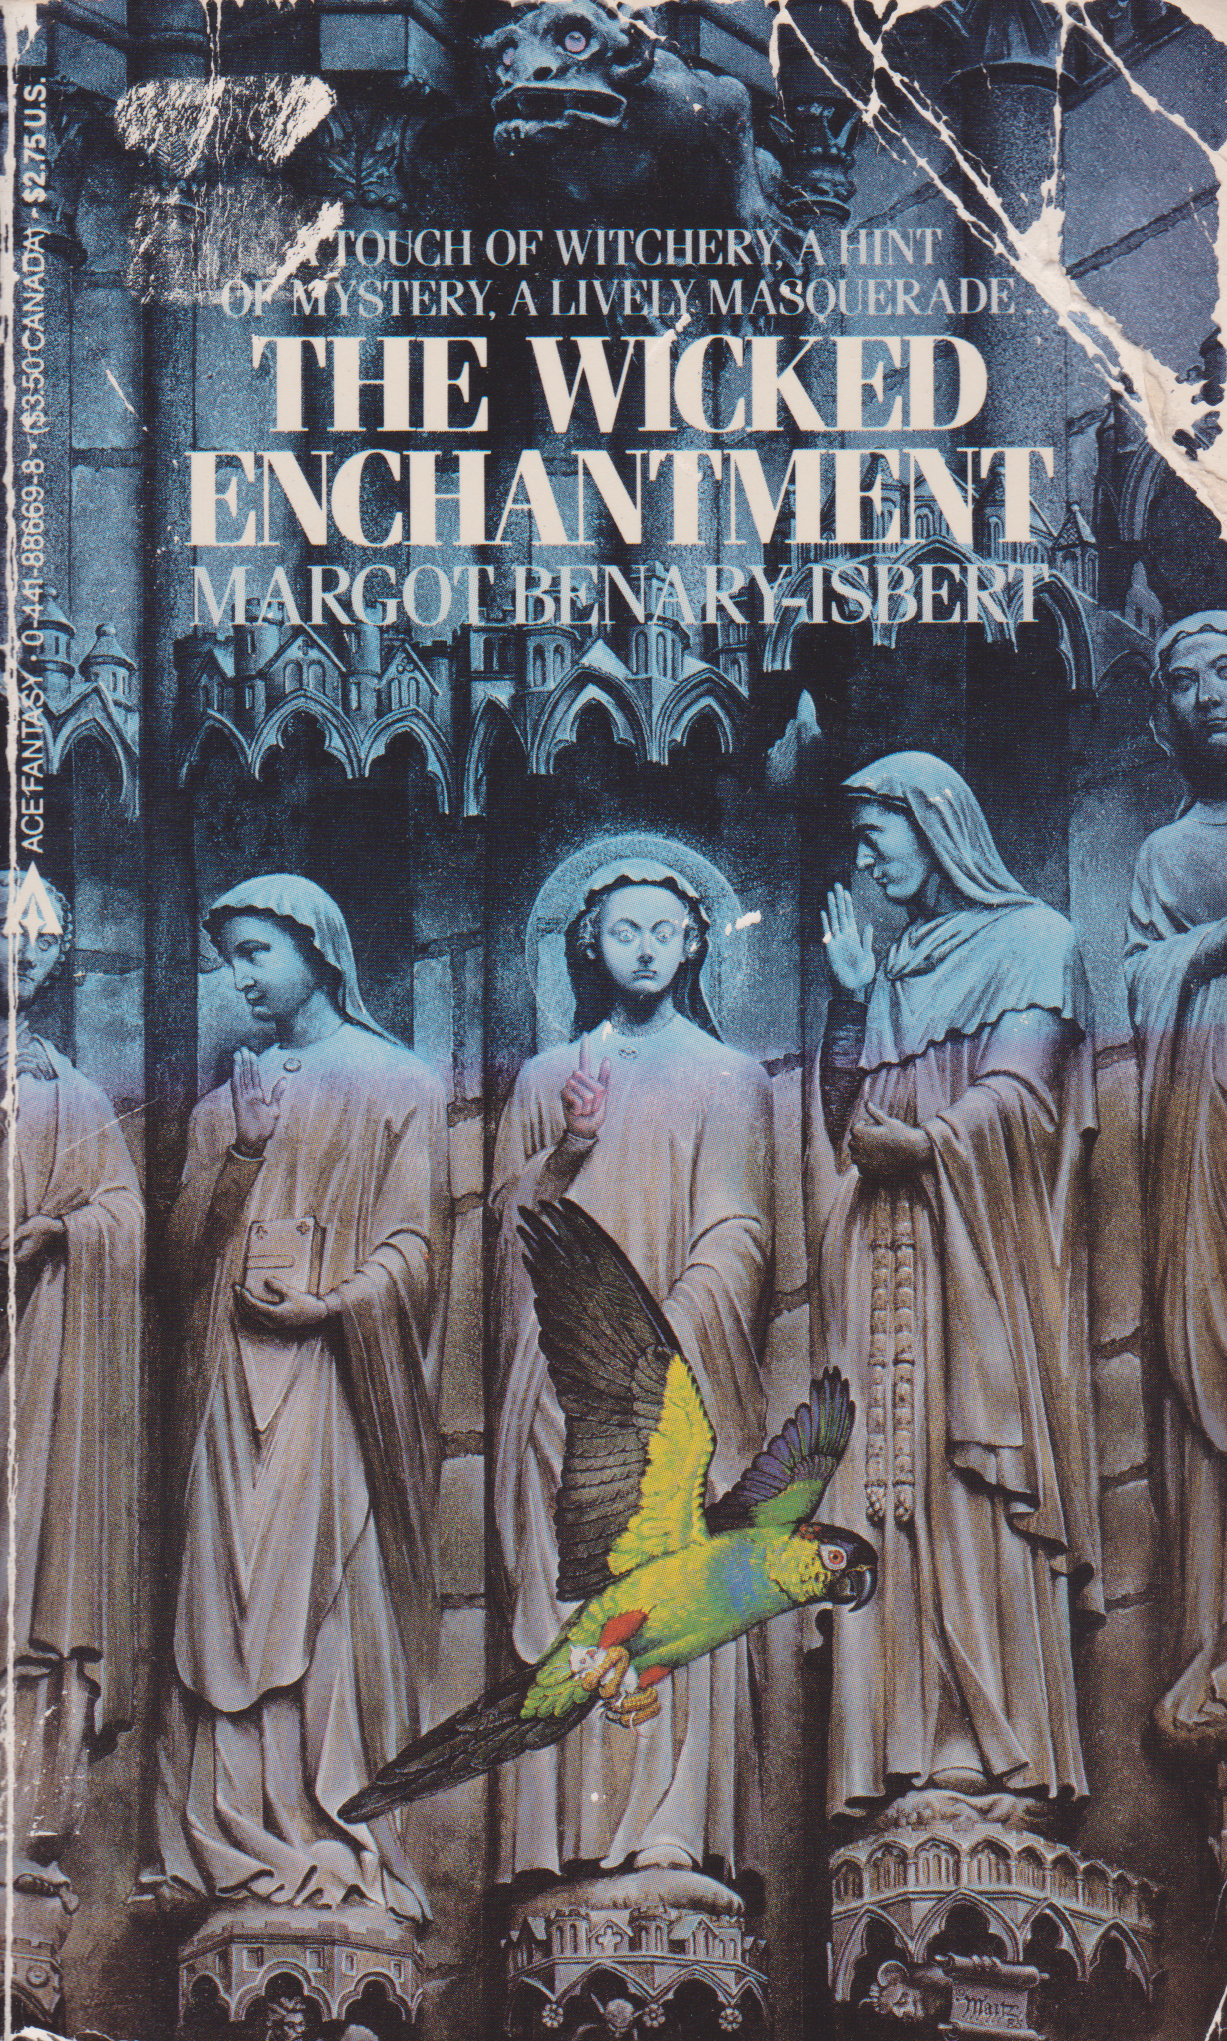 The Wicked Enchantment by Margot Benary-Isbert-front.png